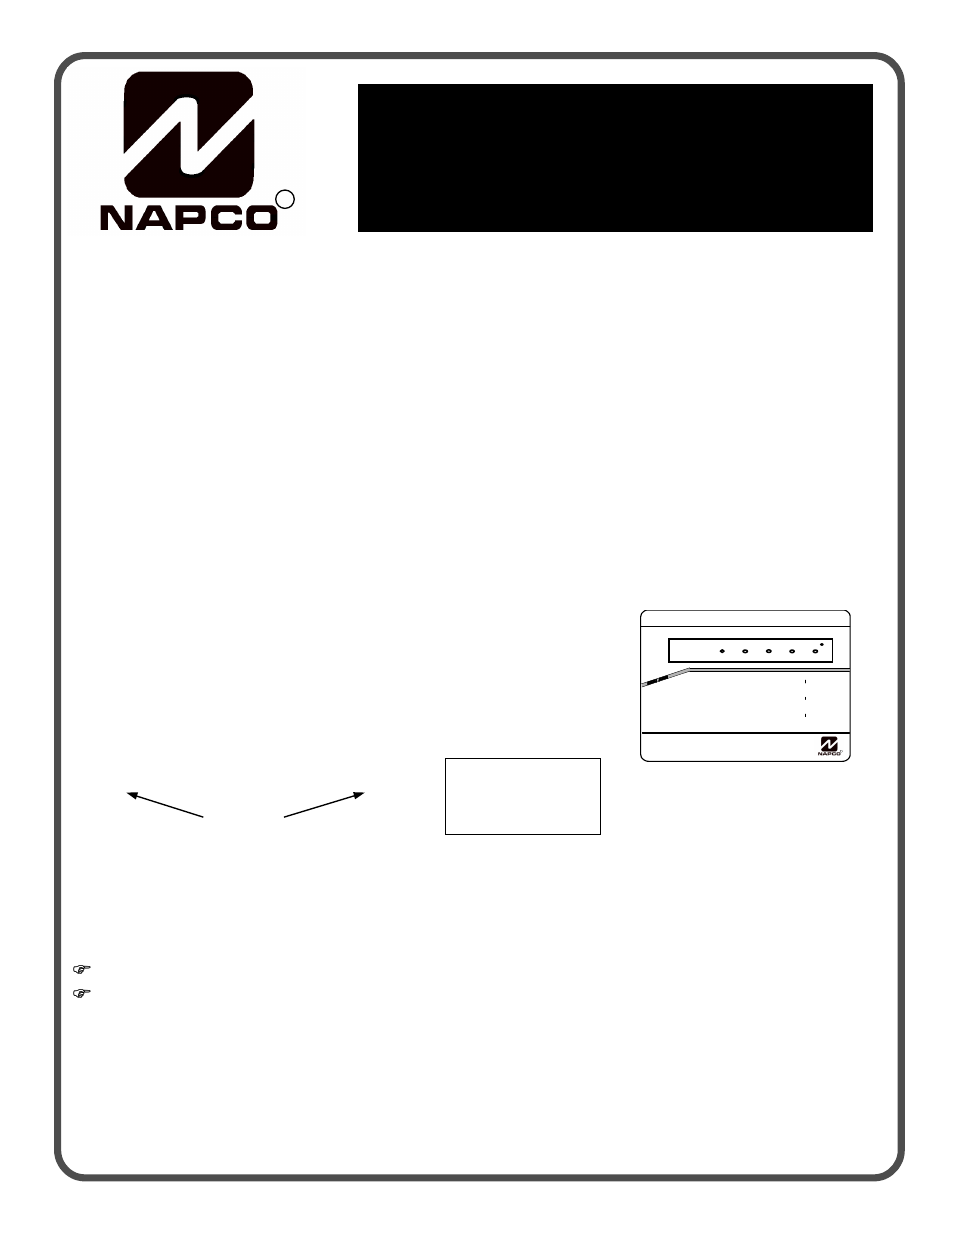 napco security technologies gem p1632 page1 napco security technologies gem p1632 user manual 16 pages gem-p1632 wiring diagram at eliteediting.co